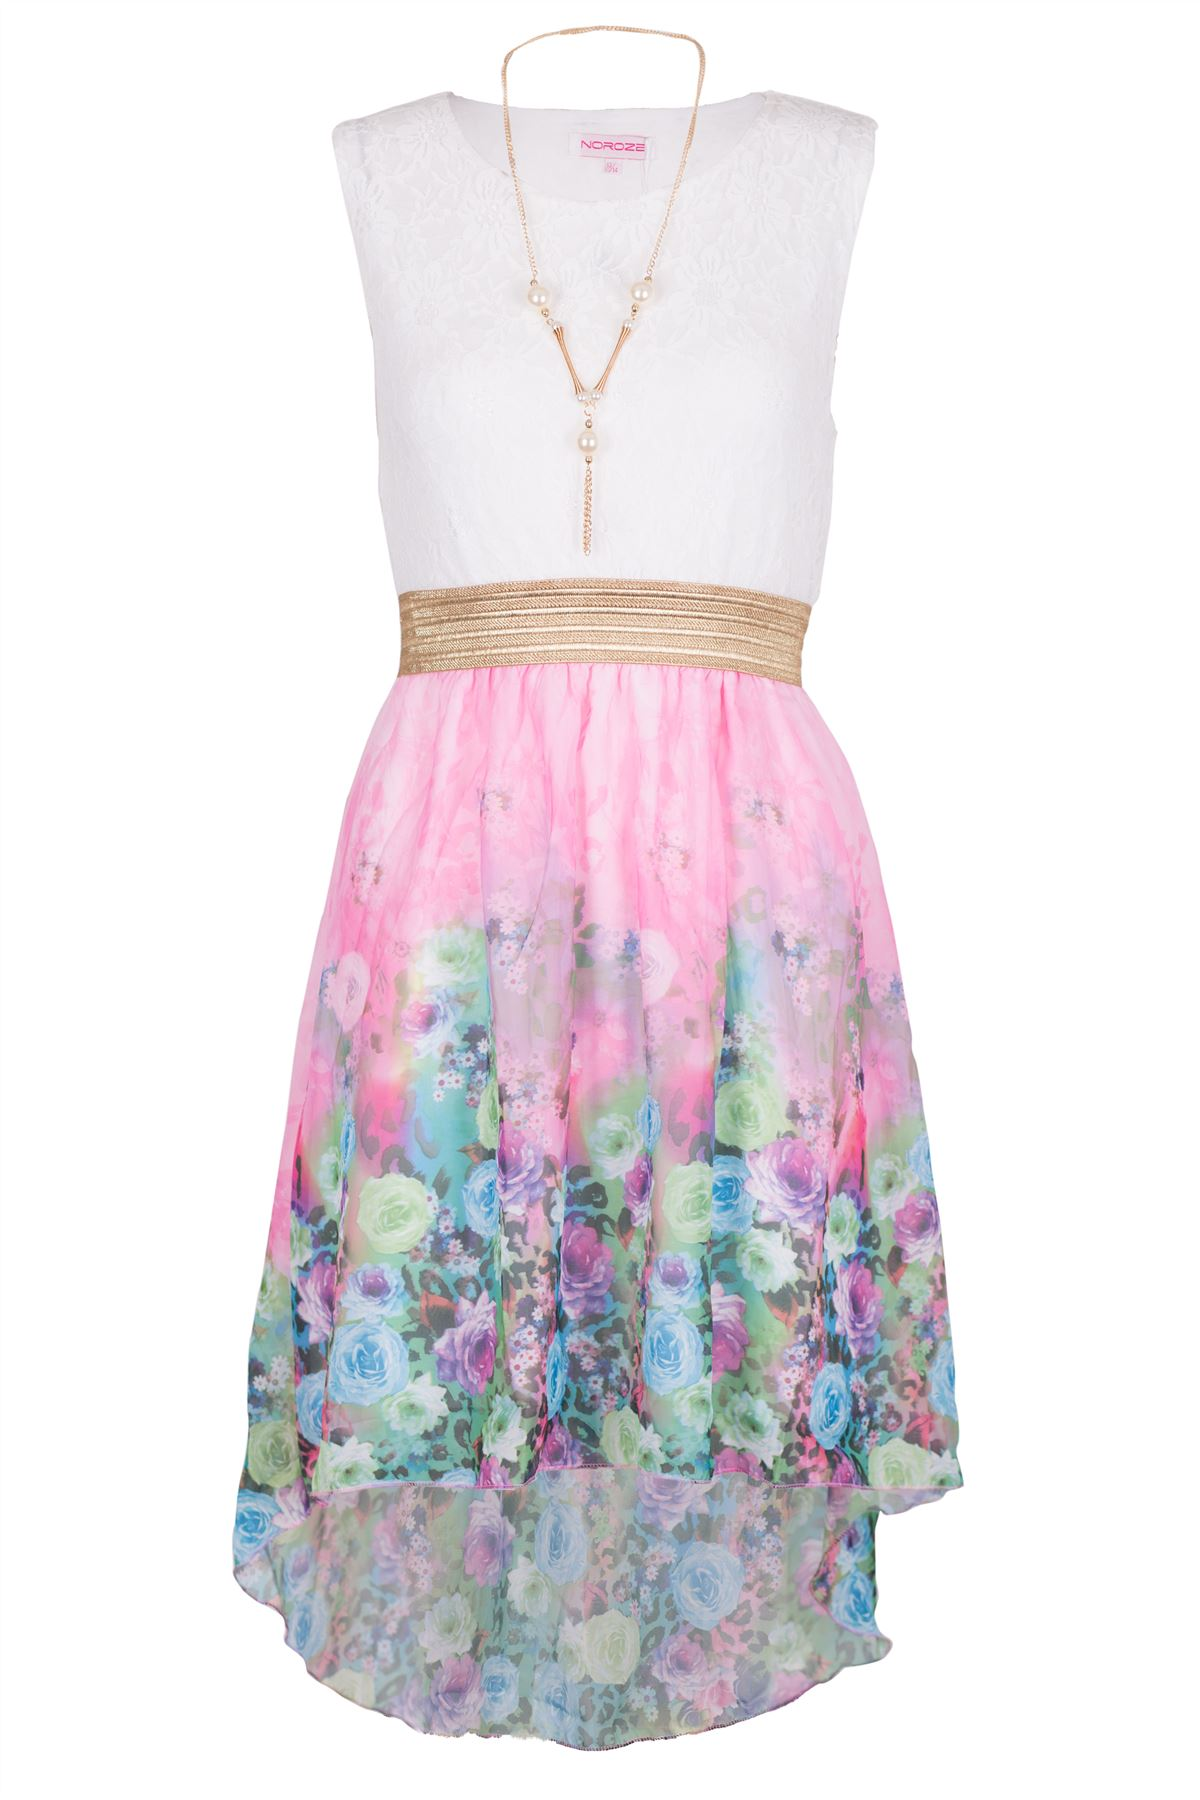 Girls Kids Summer Party Sleeveless Lace Tops Floral High Low Dress 3 ...